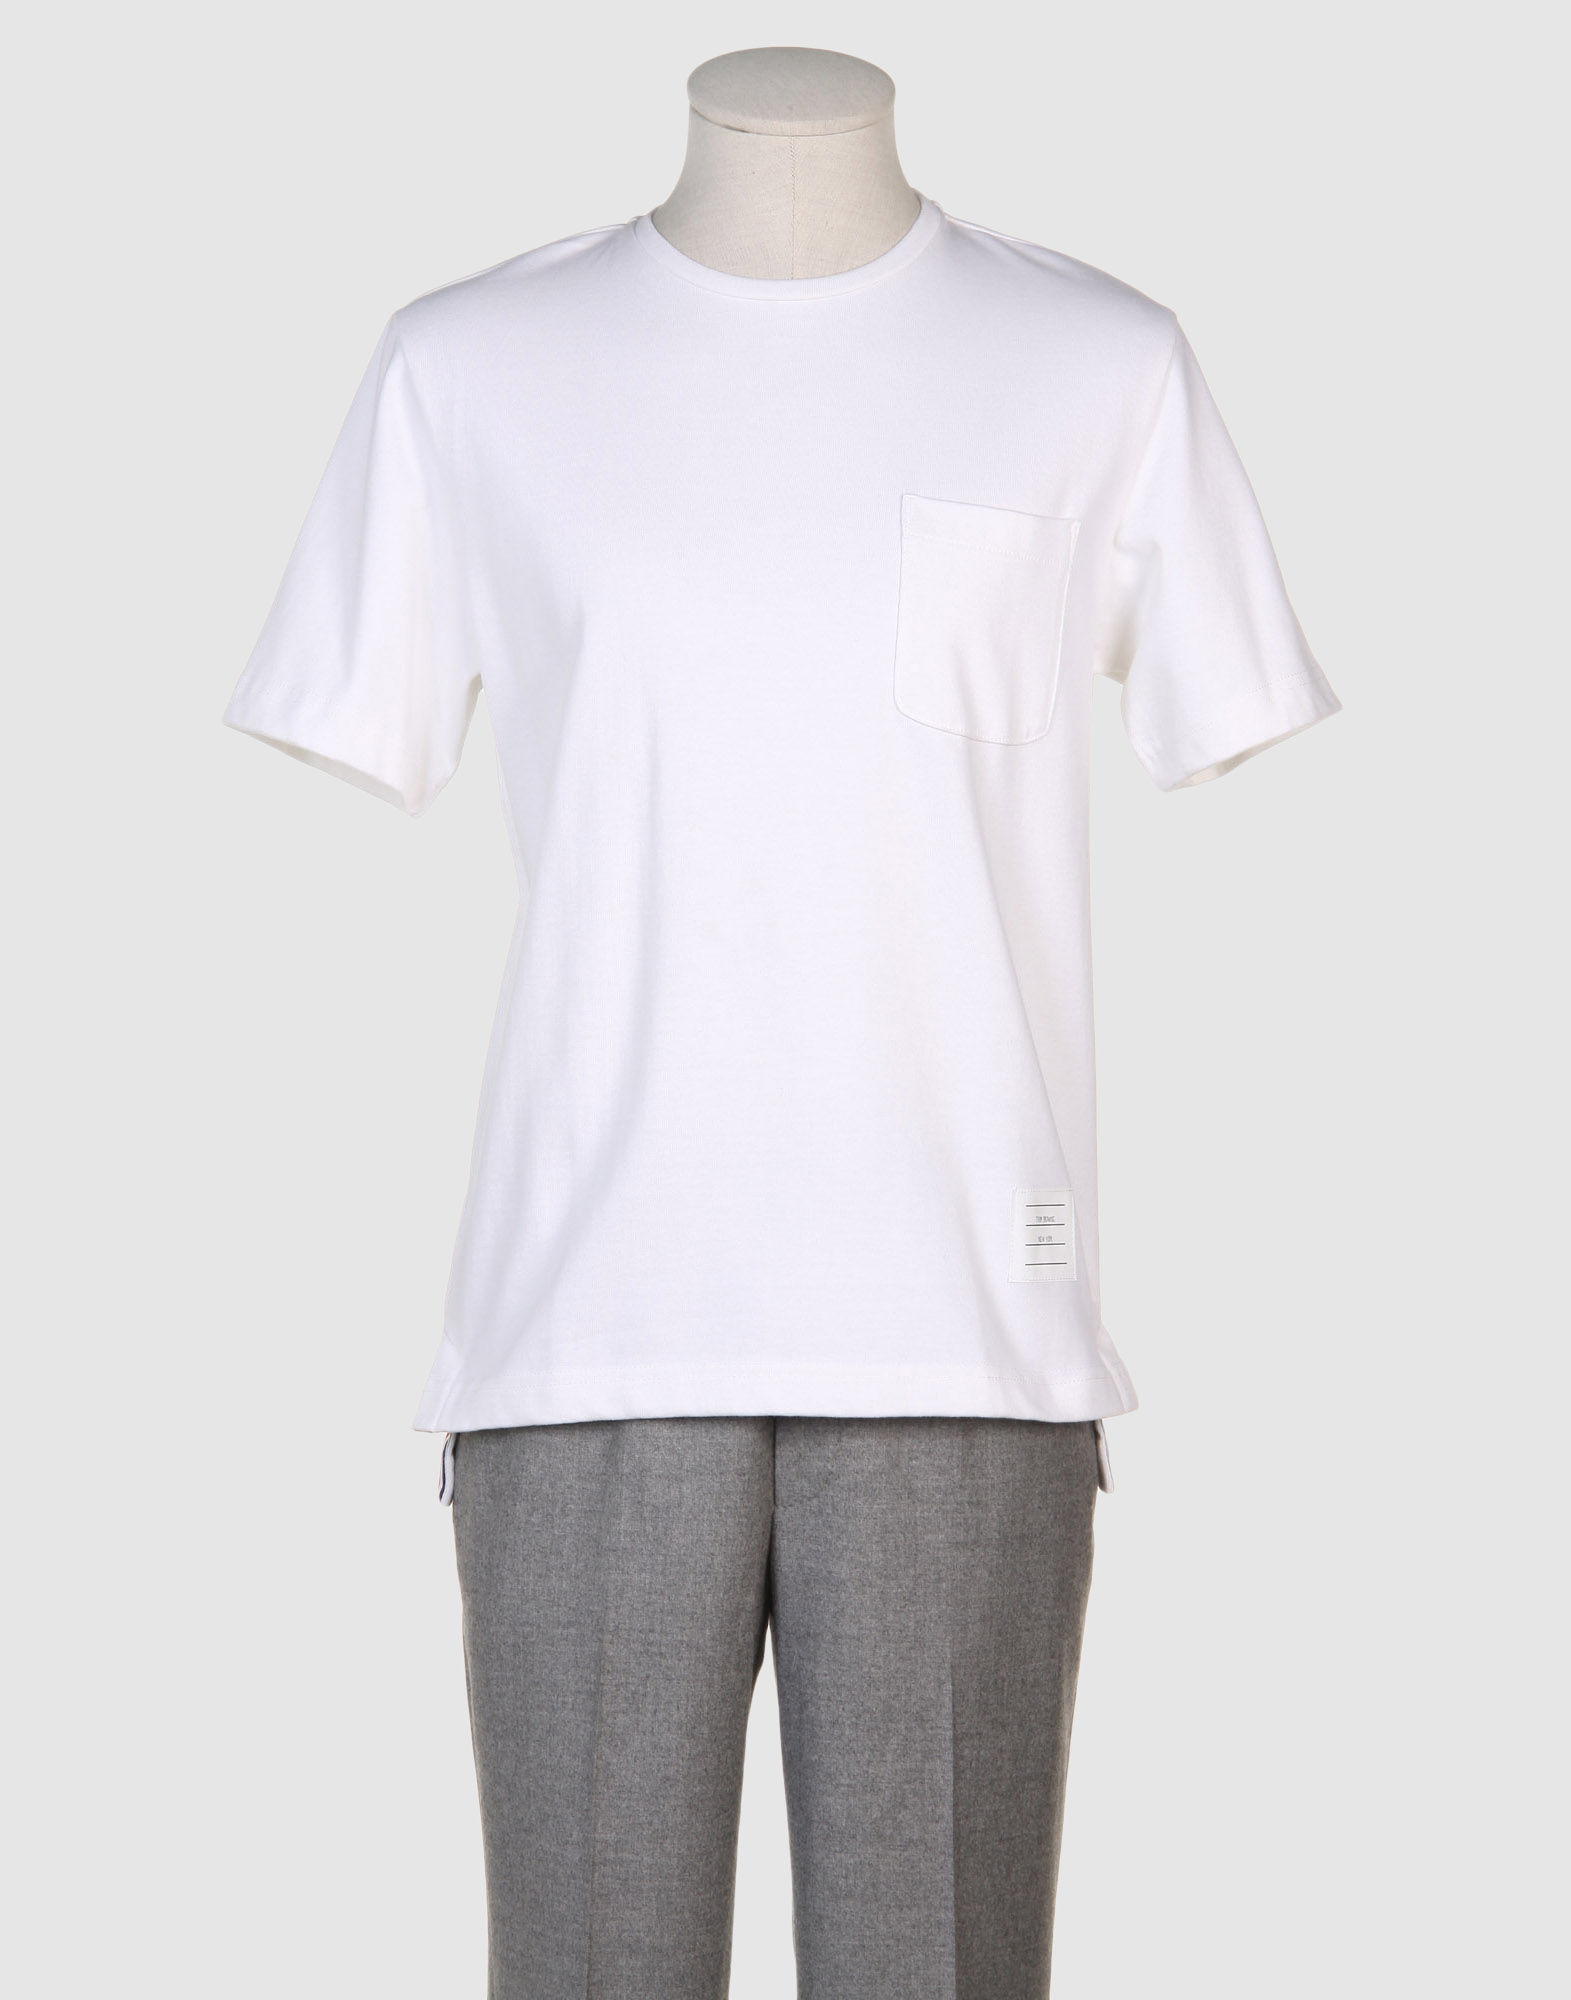 Thom browne short sleeve t shirts in white for men lyst for Thom browne t shirt